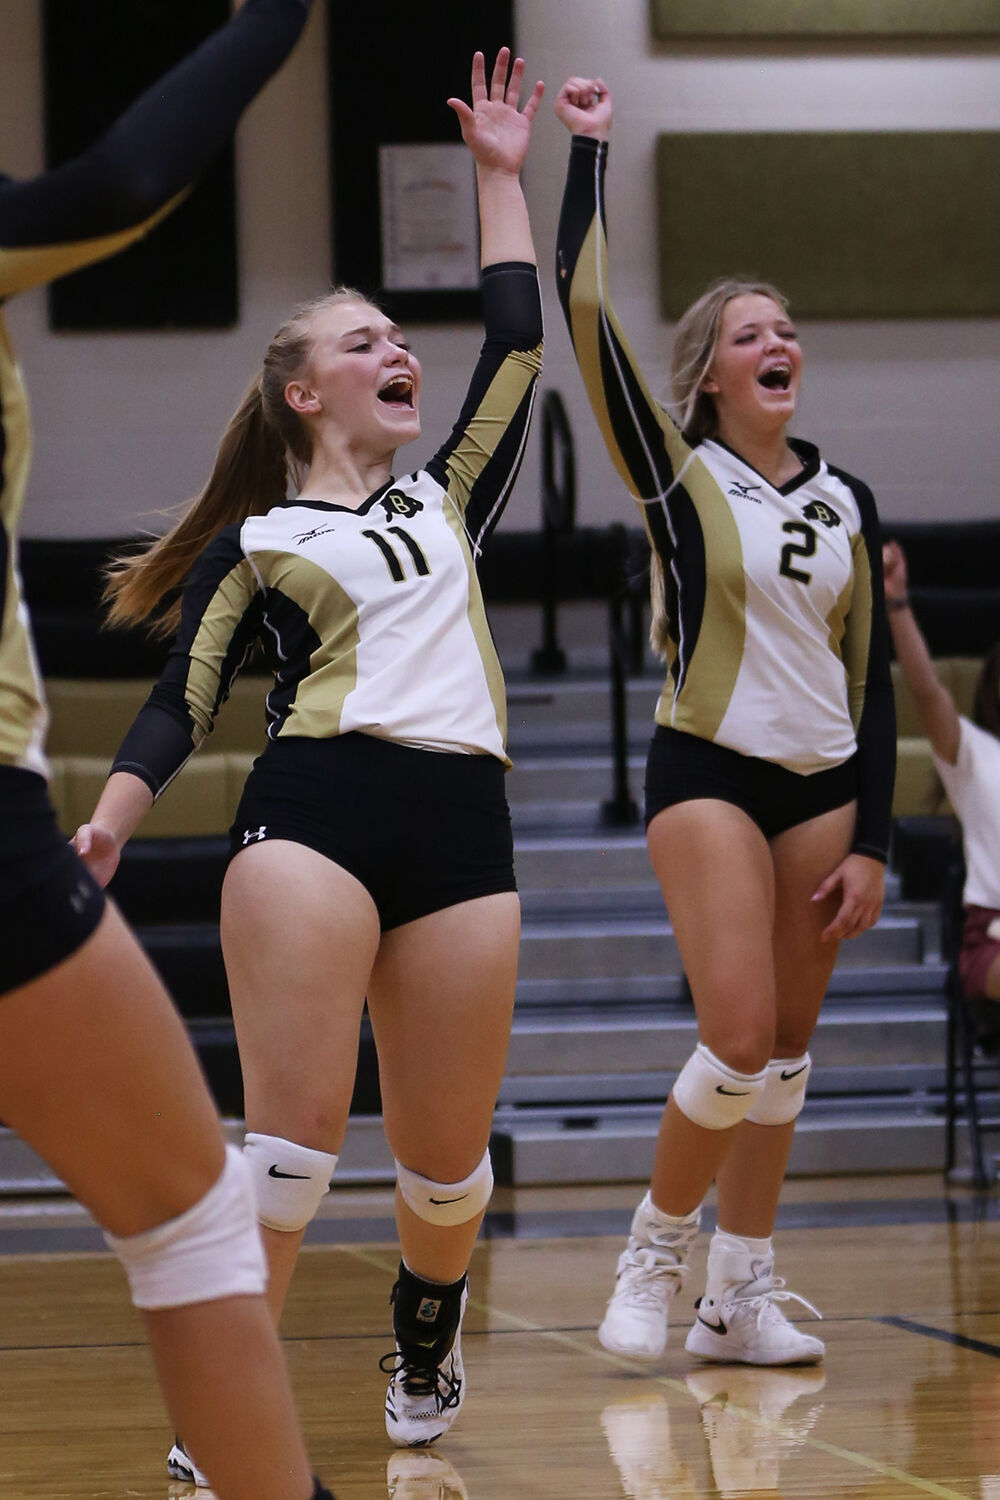 Cassie Downare and Holland Stowe throw their arms into the air